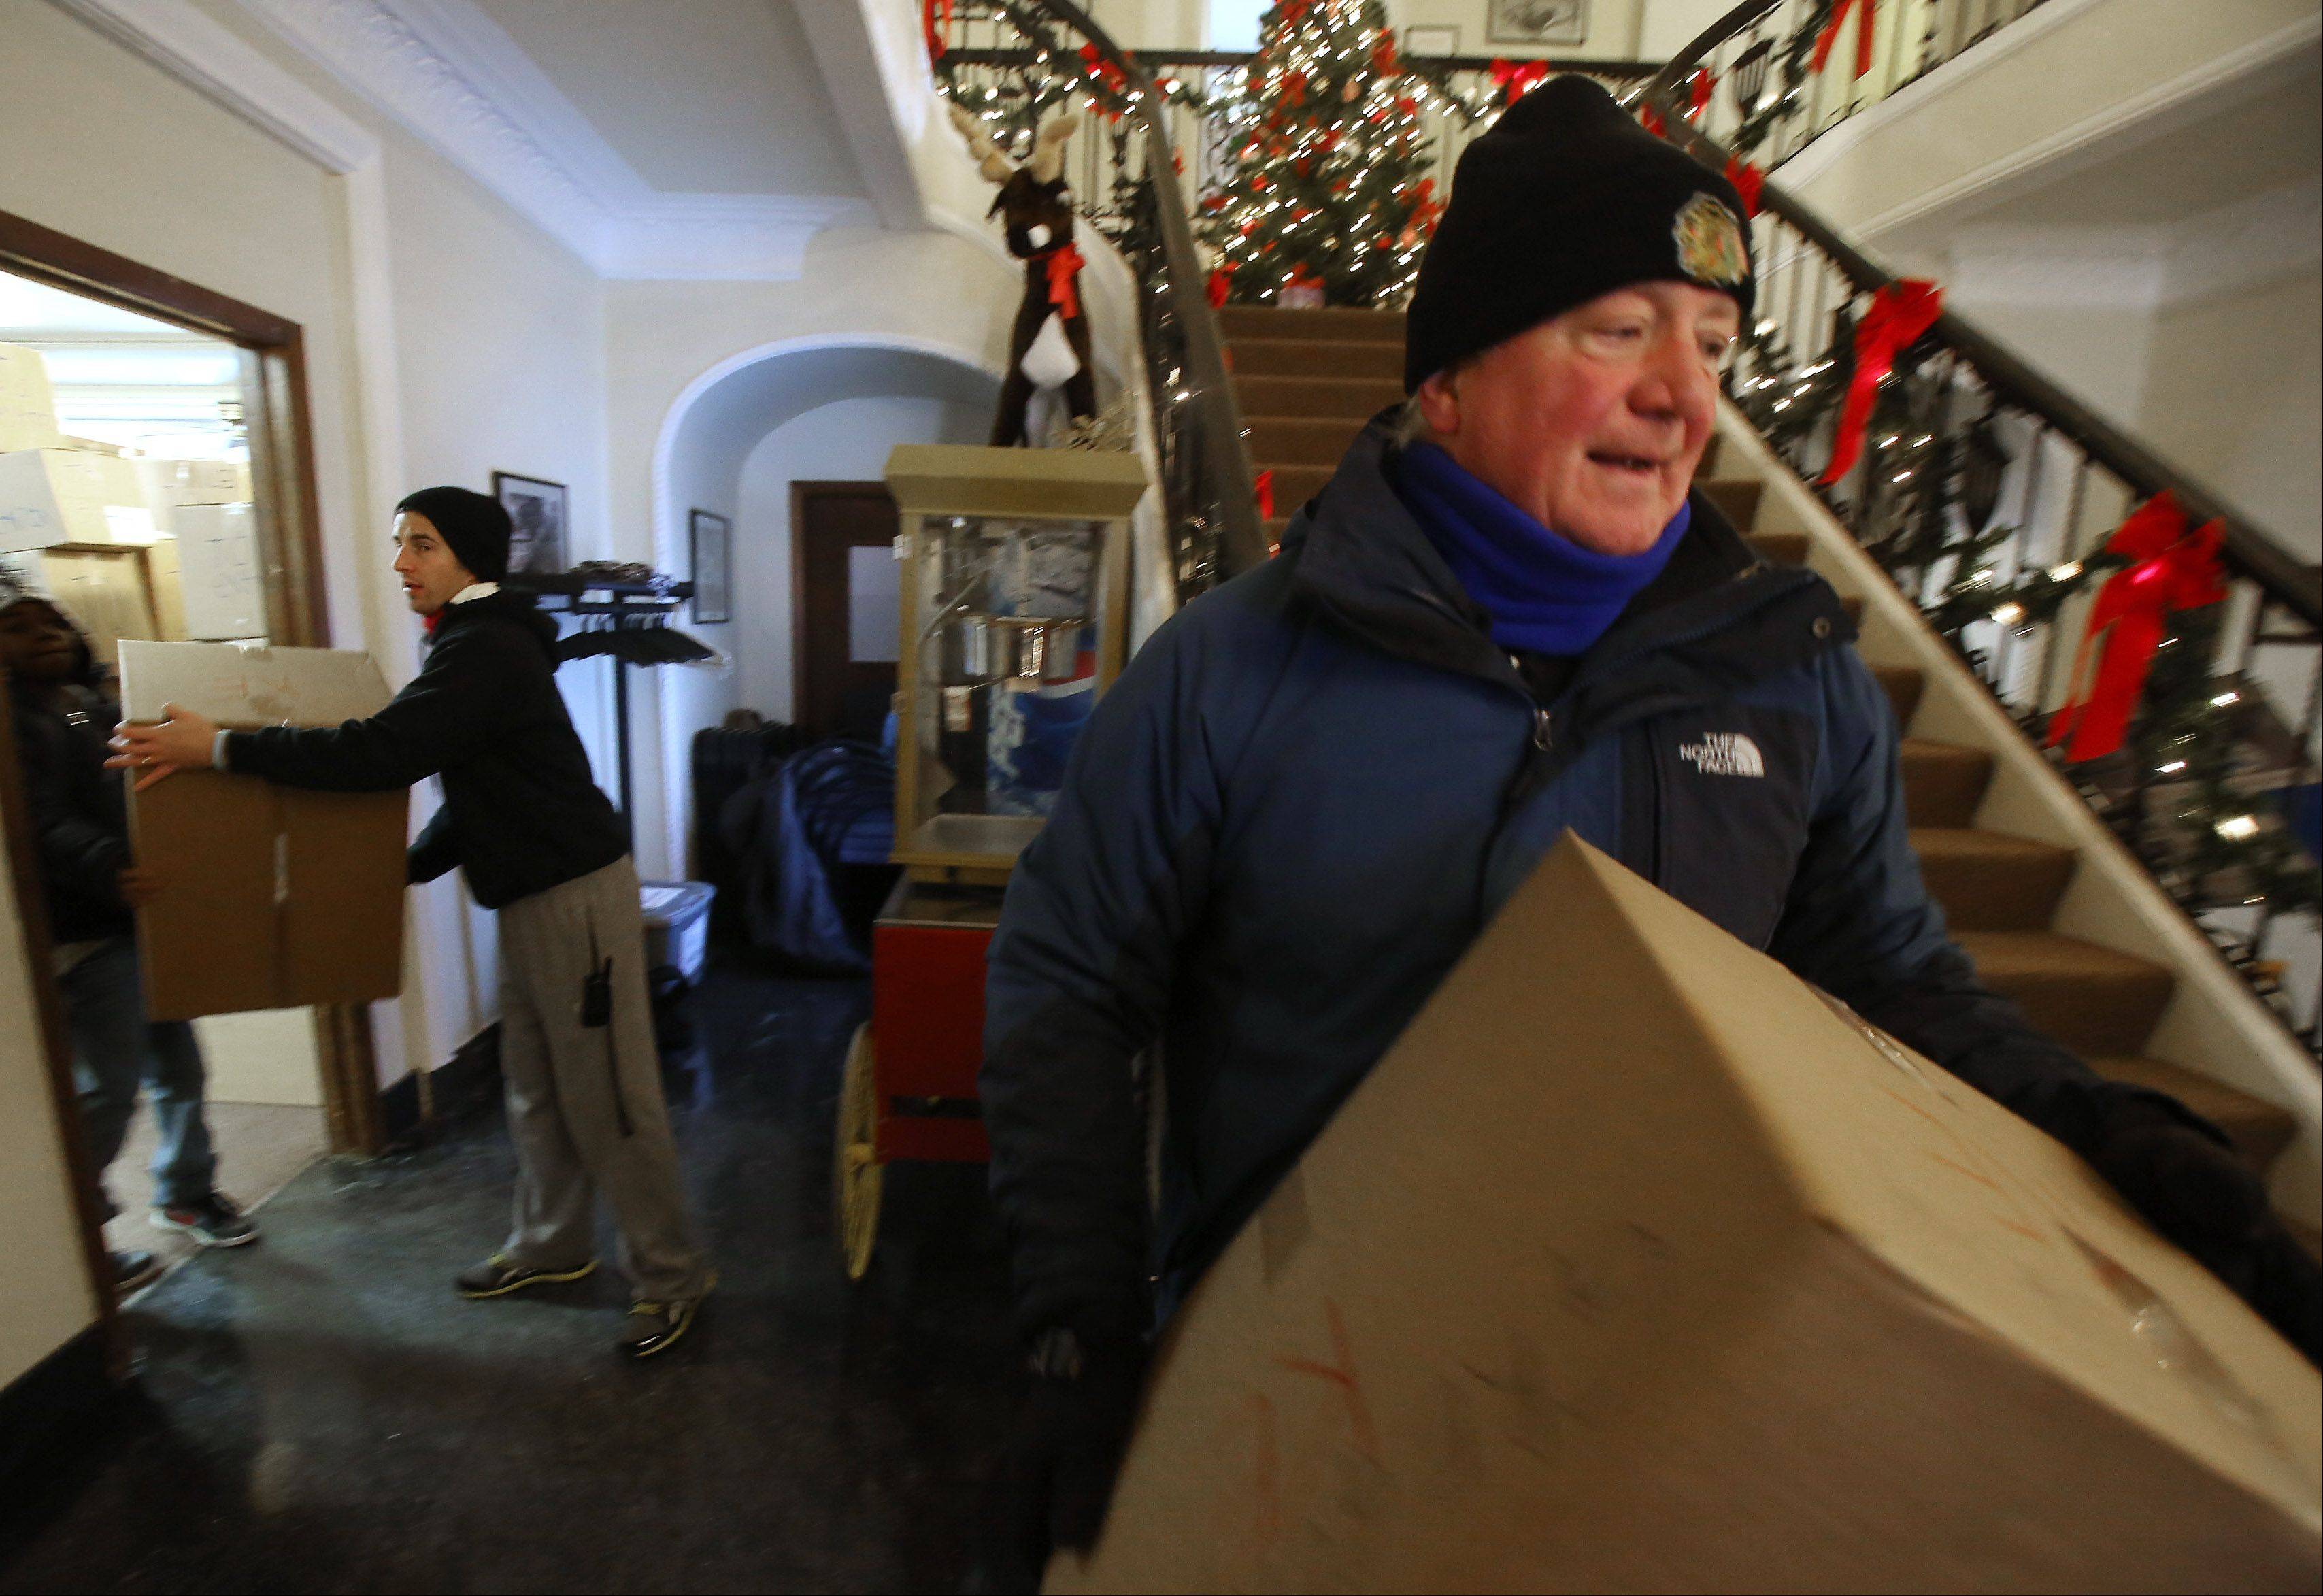 Volunteers Rich Heneberry of Lake Villa, right, and Matt Bohmann of Lindenhurst load boxes of gifts on trucks Tuesday at One Hope United in Lake Villa. The annual drive gathered nearly 2,700 gifts for children in need.